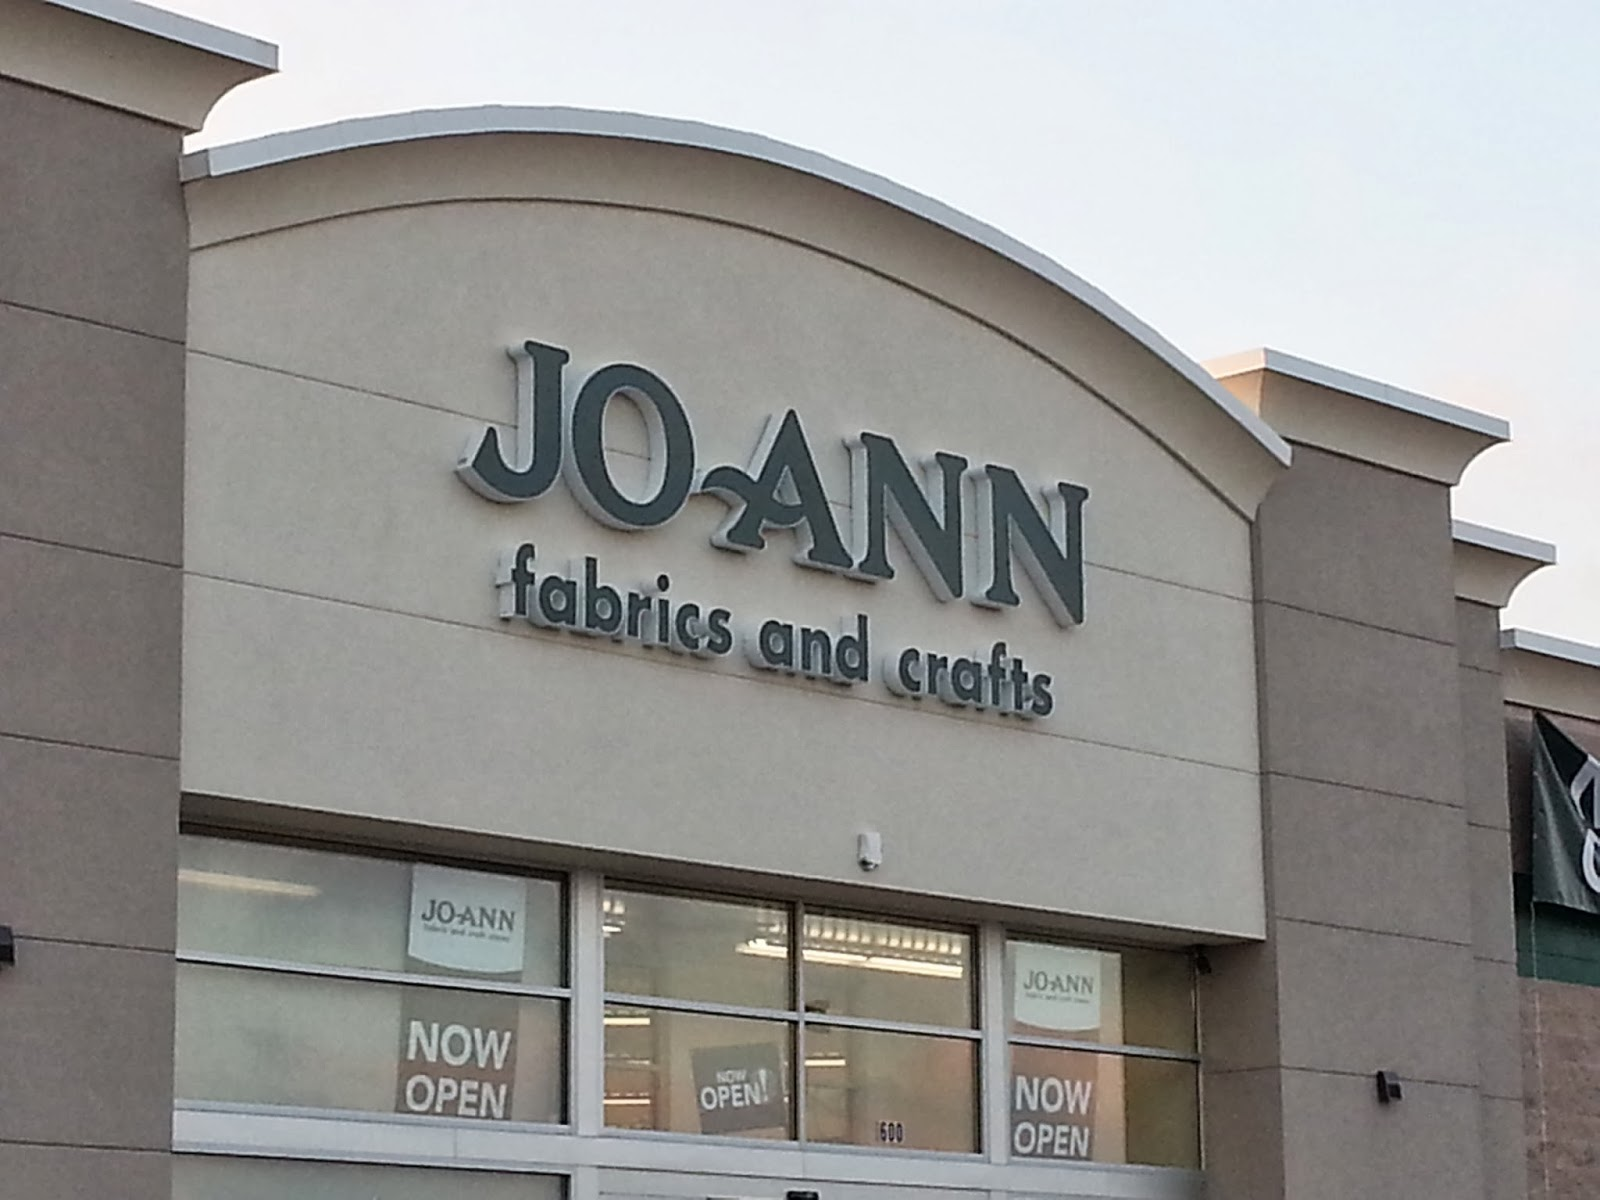 Bella amore legacy jewelry joann fabric and craft store for Joann fabric craft stores